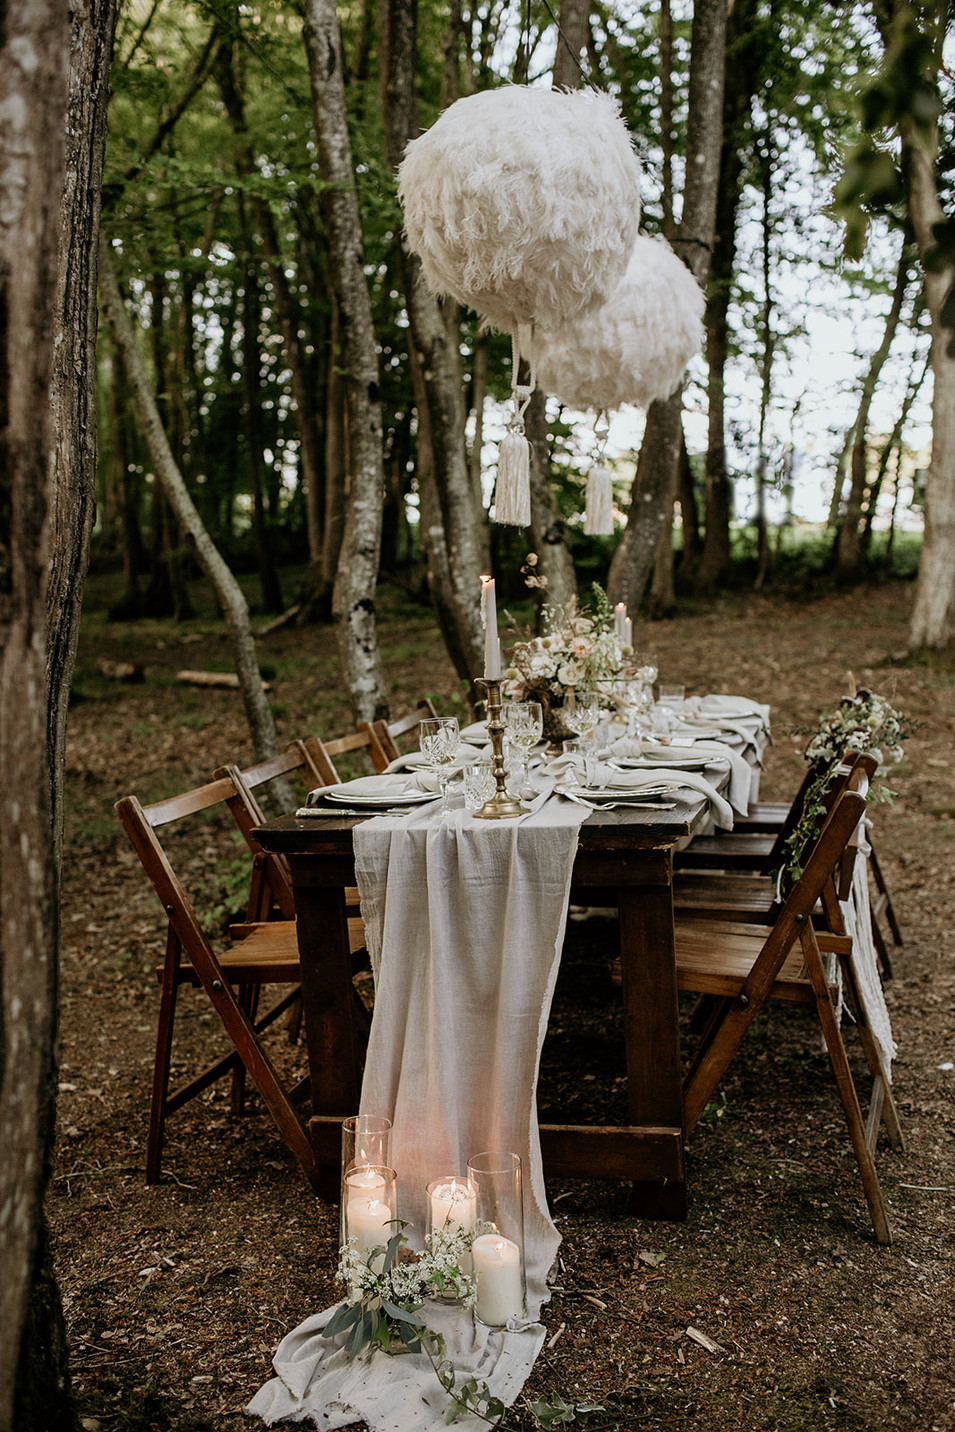 We used a naturally dyed runner, styling gauze and napkins for this set up as well as an upcycled table and authentic folding chairs.